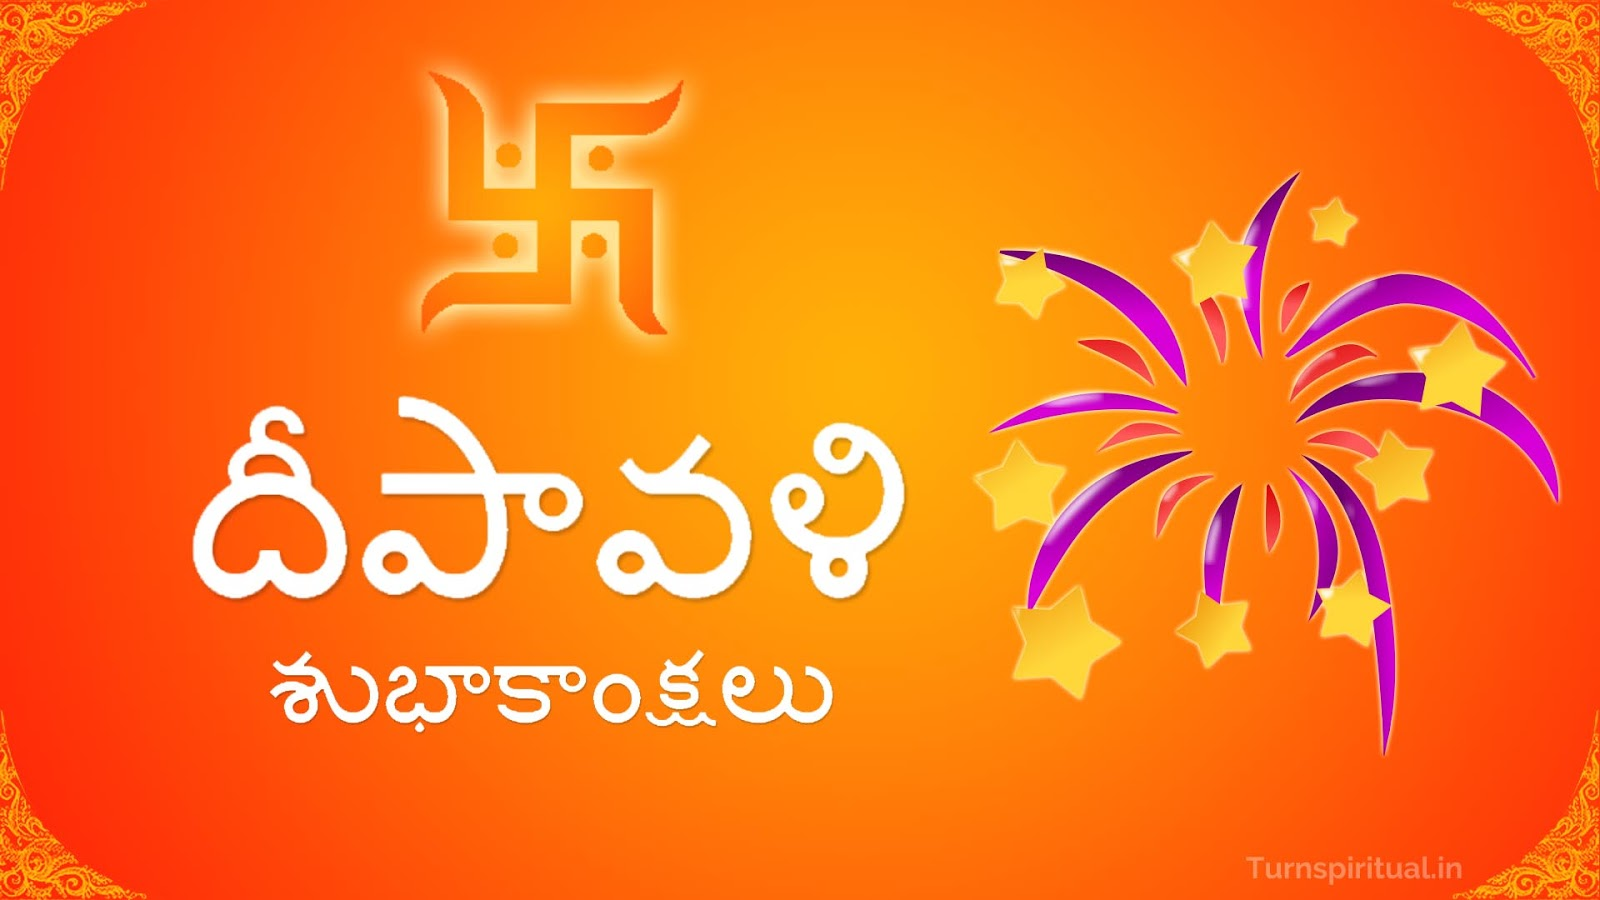 Best Happy Diwali Greetings Messages Images Quotes In Hindi English